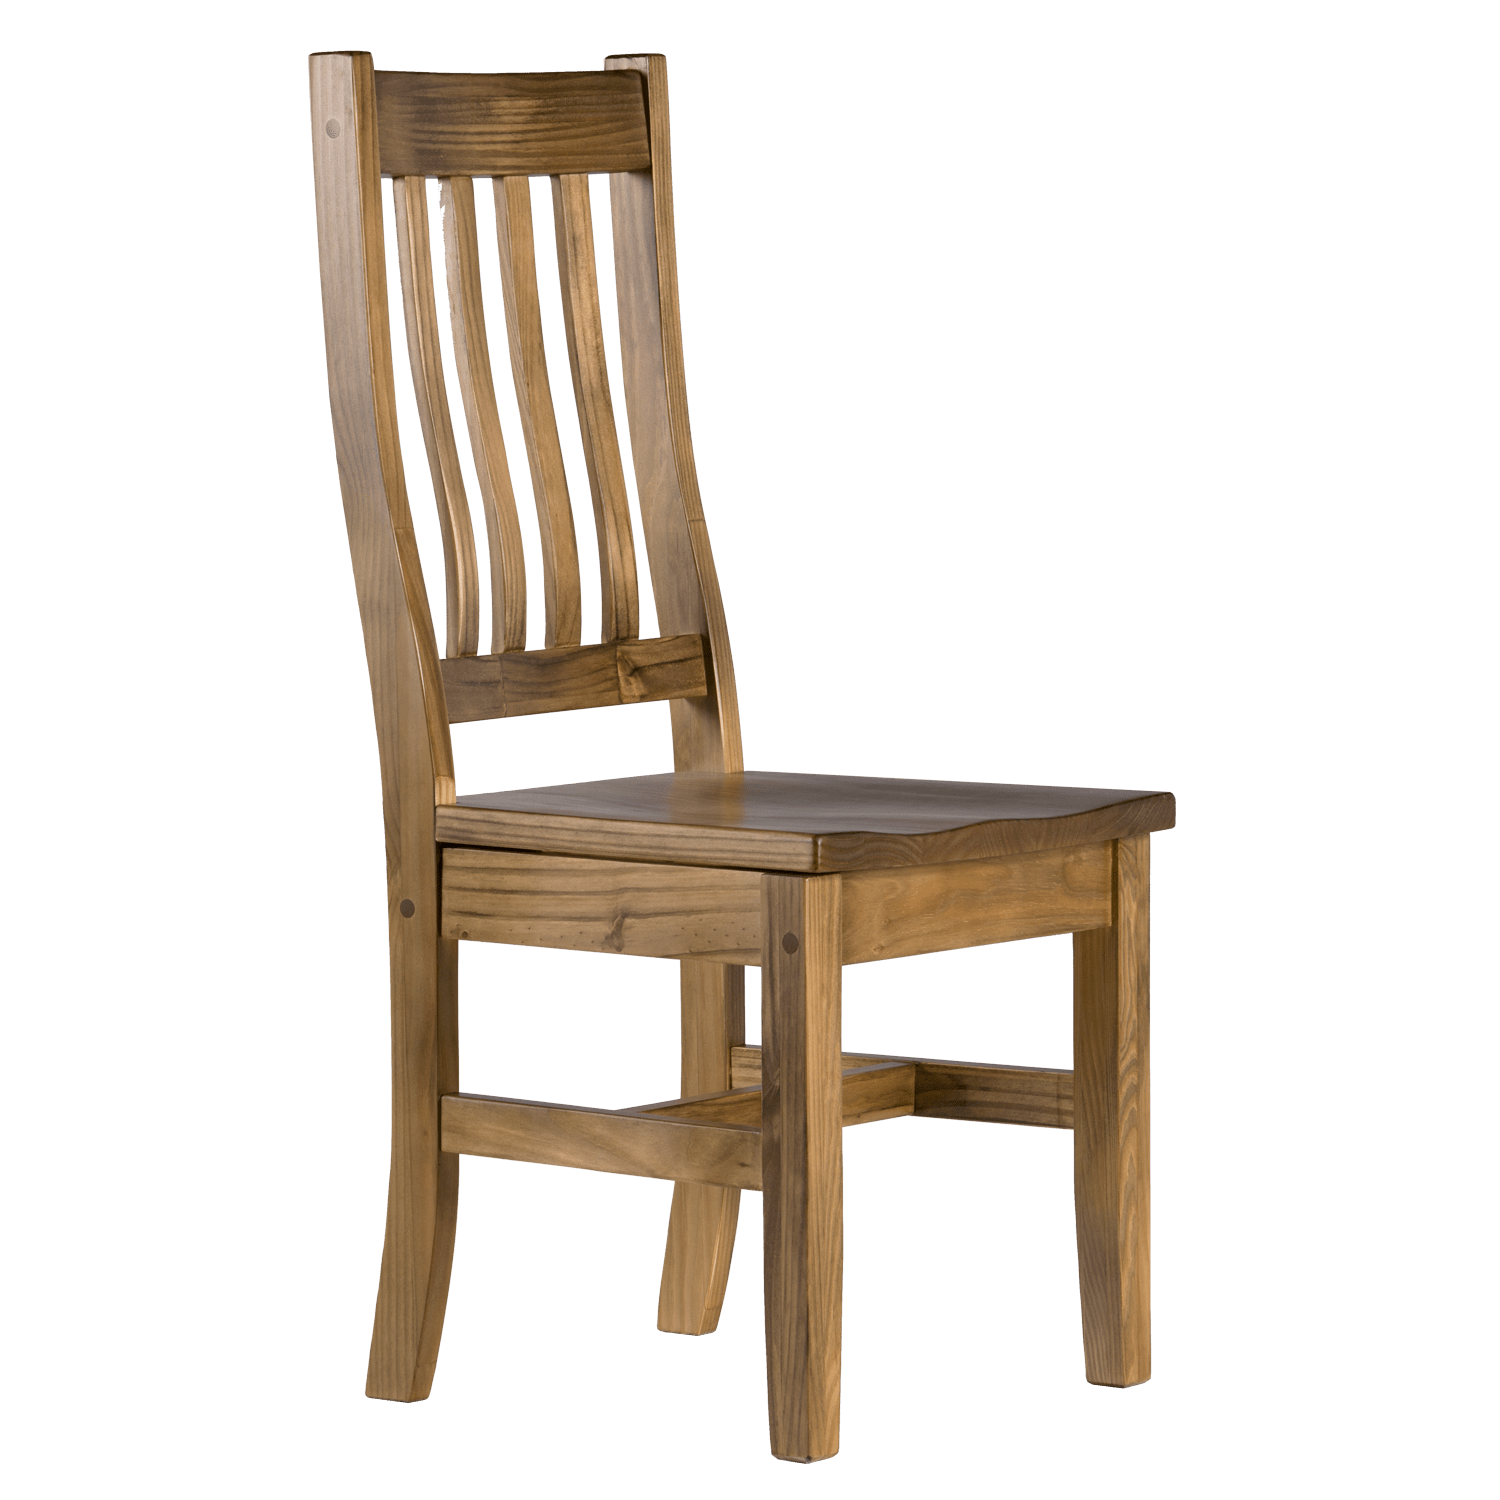 Chair Wooden Schoolhouse Chair With Wood Seat Hotzon Furniture Inc